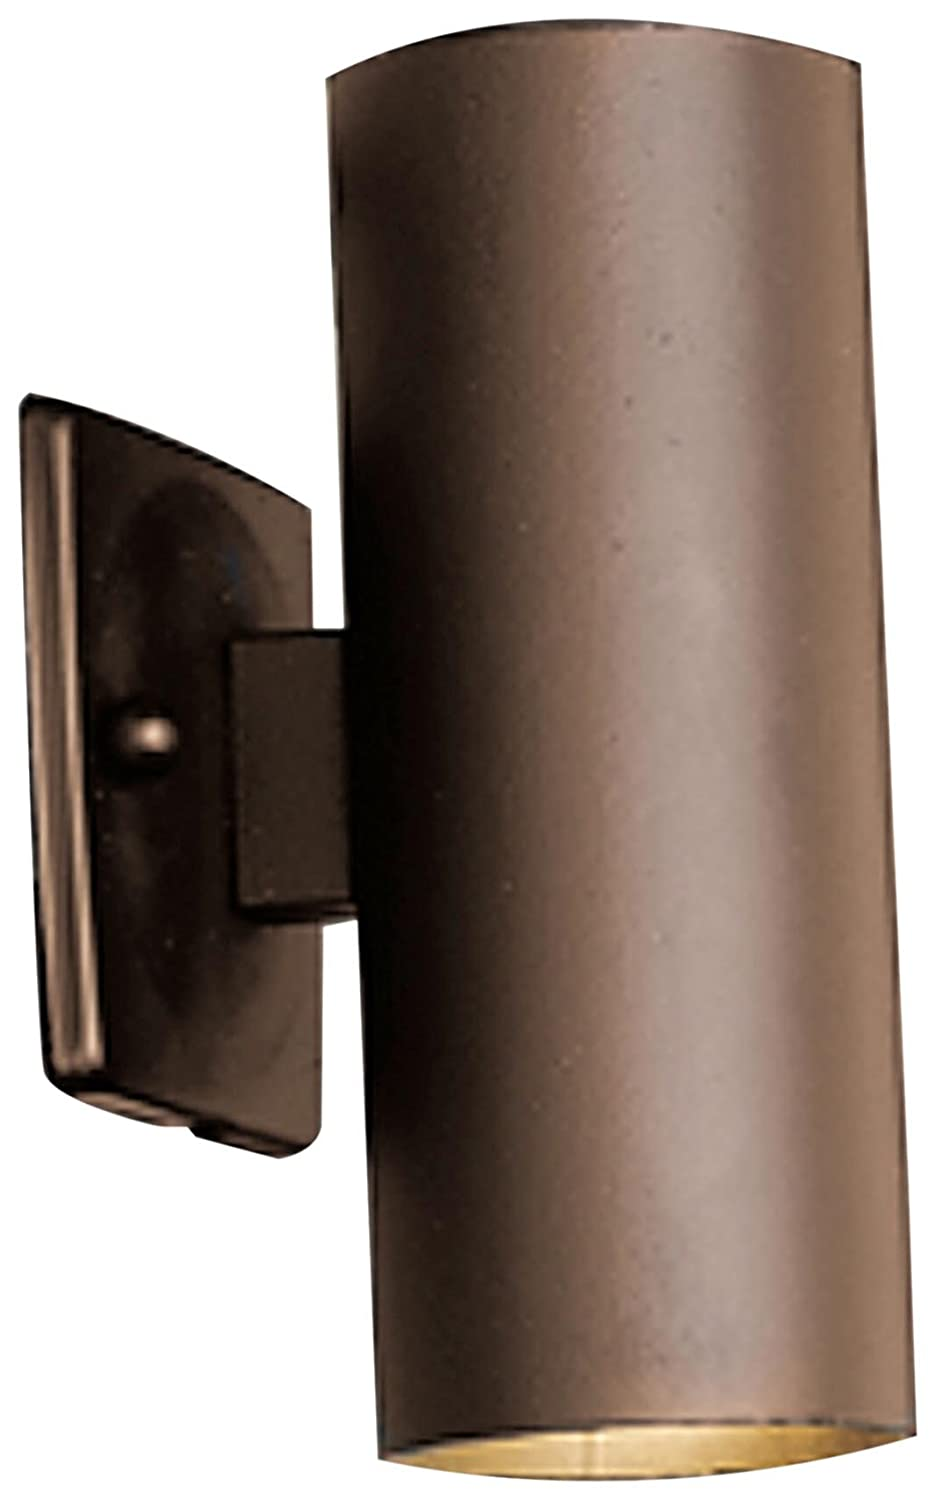 deck accent lighting. Kichler 15079AZT Up/Down Accent Light, Textured Architectural Bronze - Outdoor Lights Low Voltage Sconces Amazon.com Deck Lighting